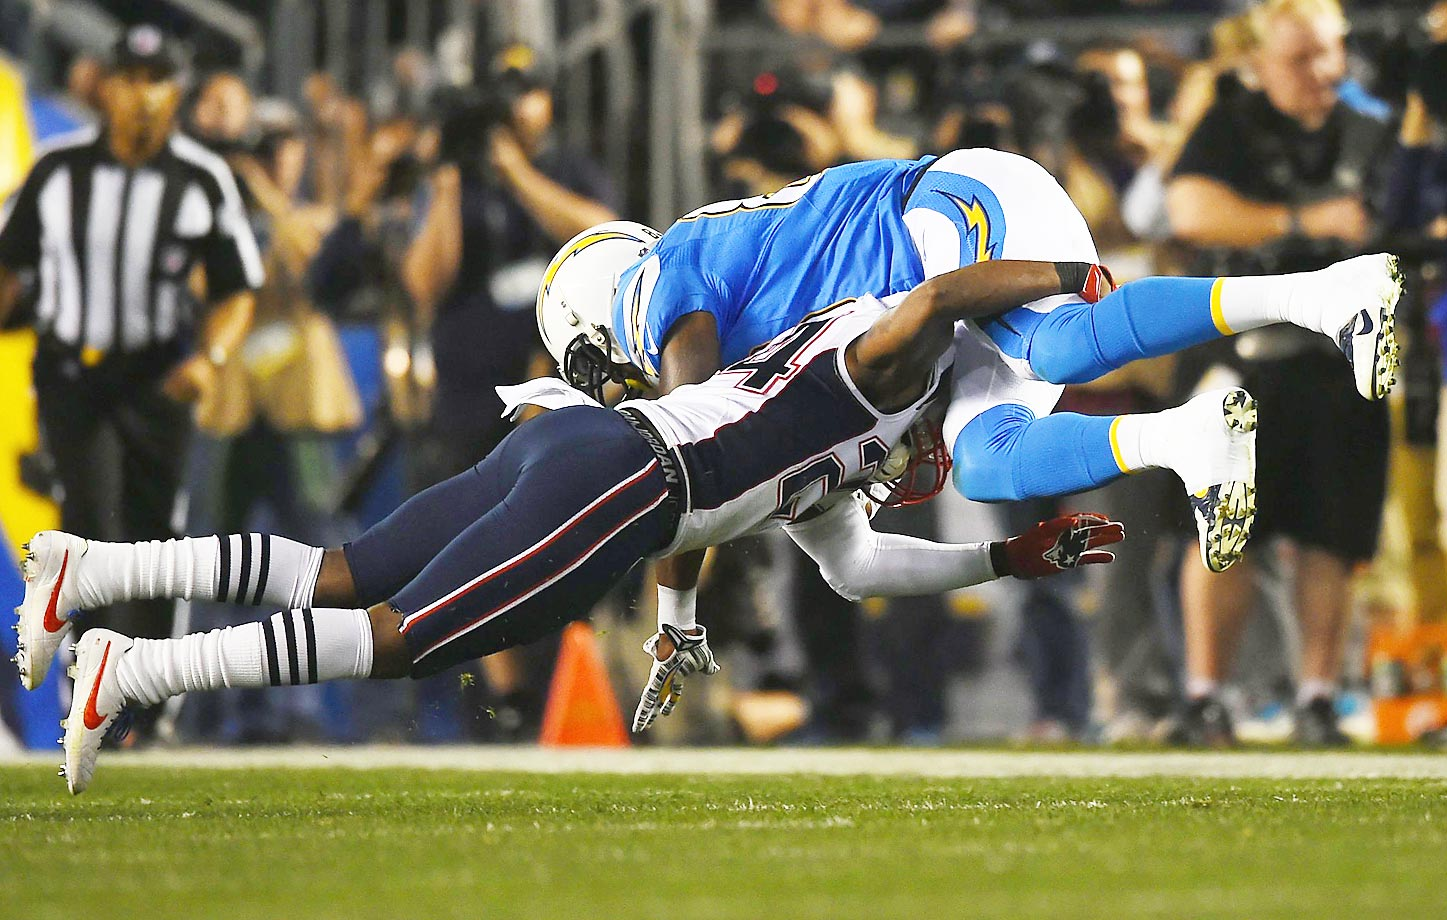 Darrelle Revis of the Patriots tackles Ladarius Green during Sunday's game against the Chargers game.